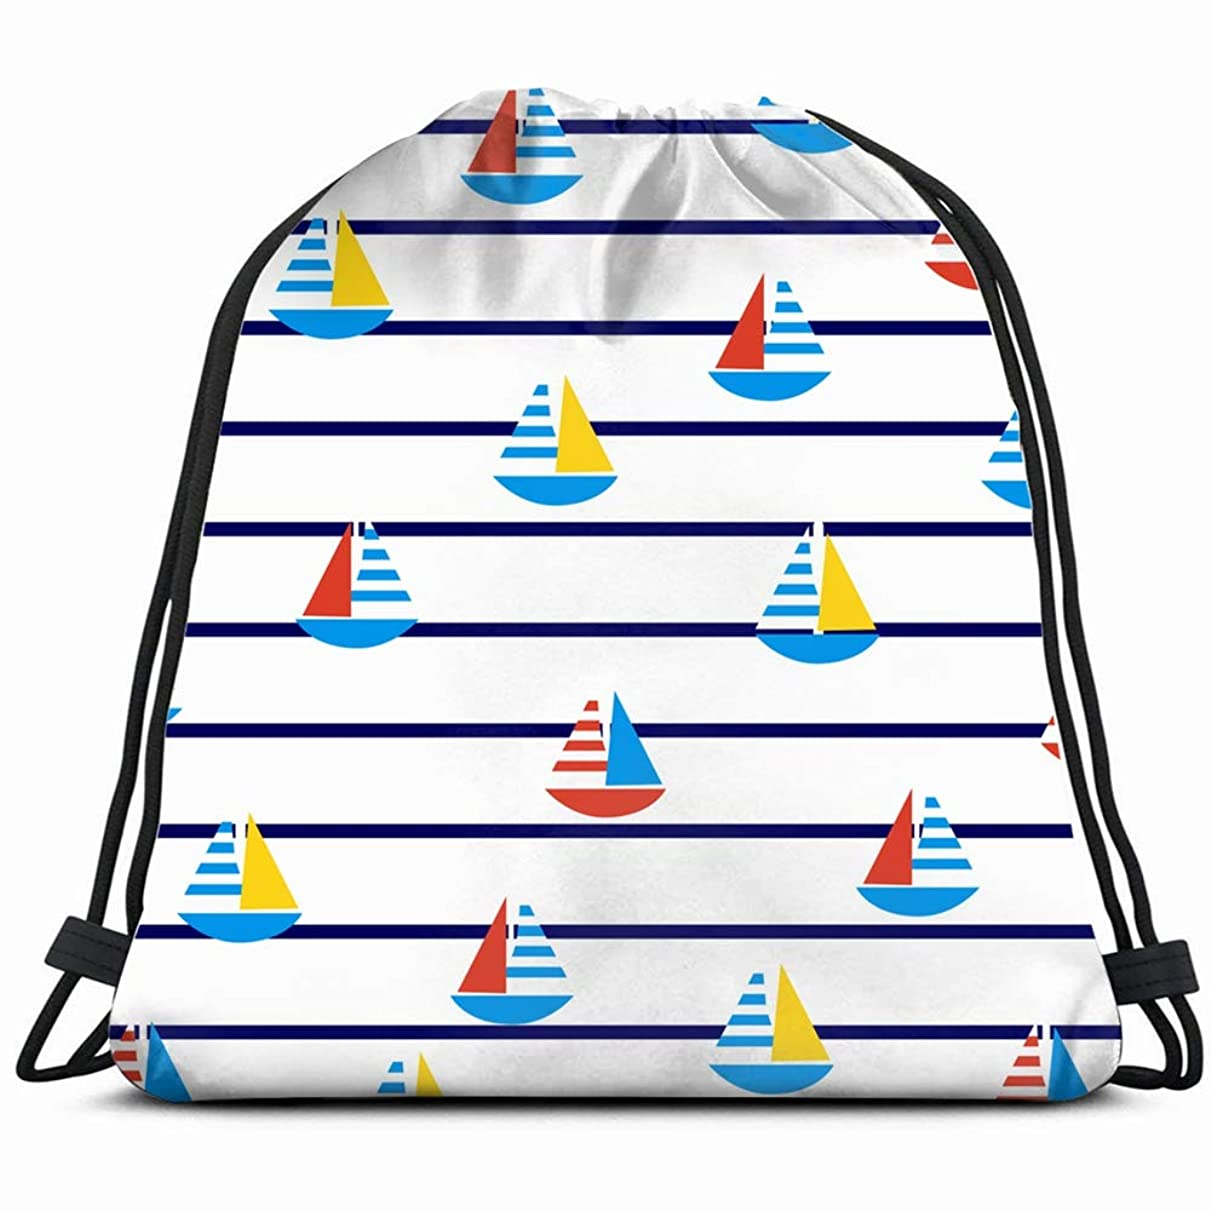 sailboats on marine stripes summer pattern backgrounds textures Drawstring Backpack Gym Spacious Pull String Backpack Multifunctional storage bag 14.2 x 16.9 inch